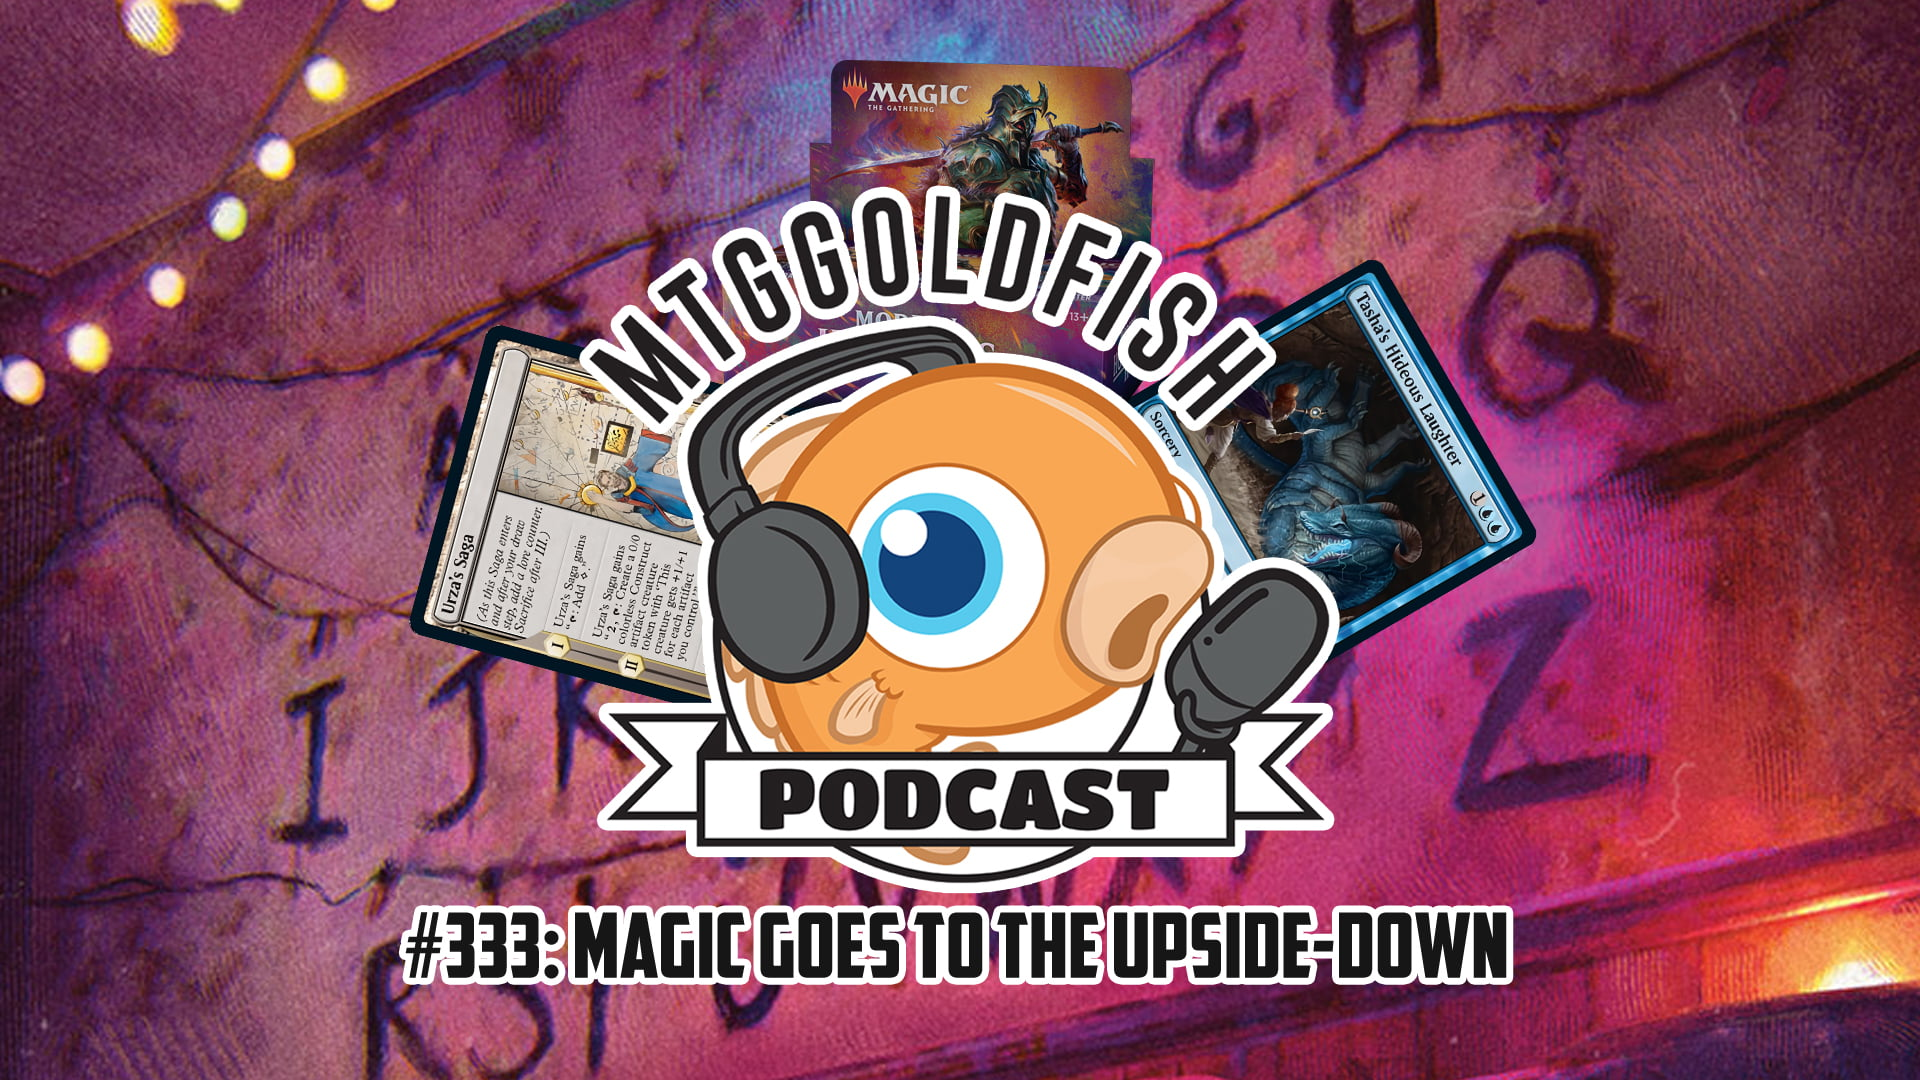 Image for Podcast 333: Magic Goes To the Upside Down (Stranger Things)